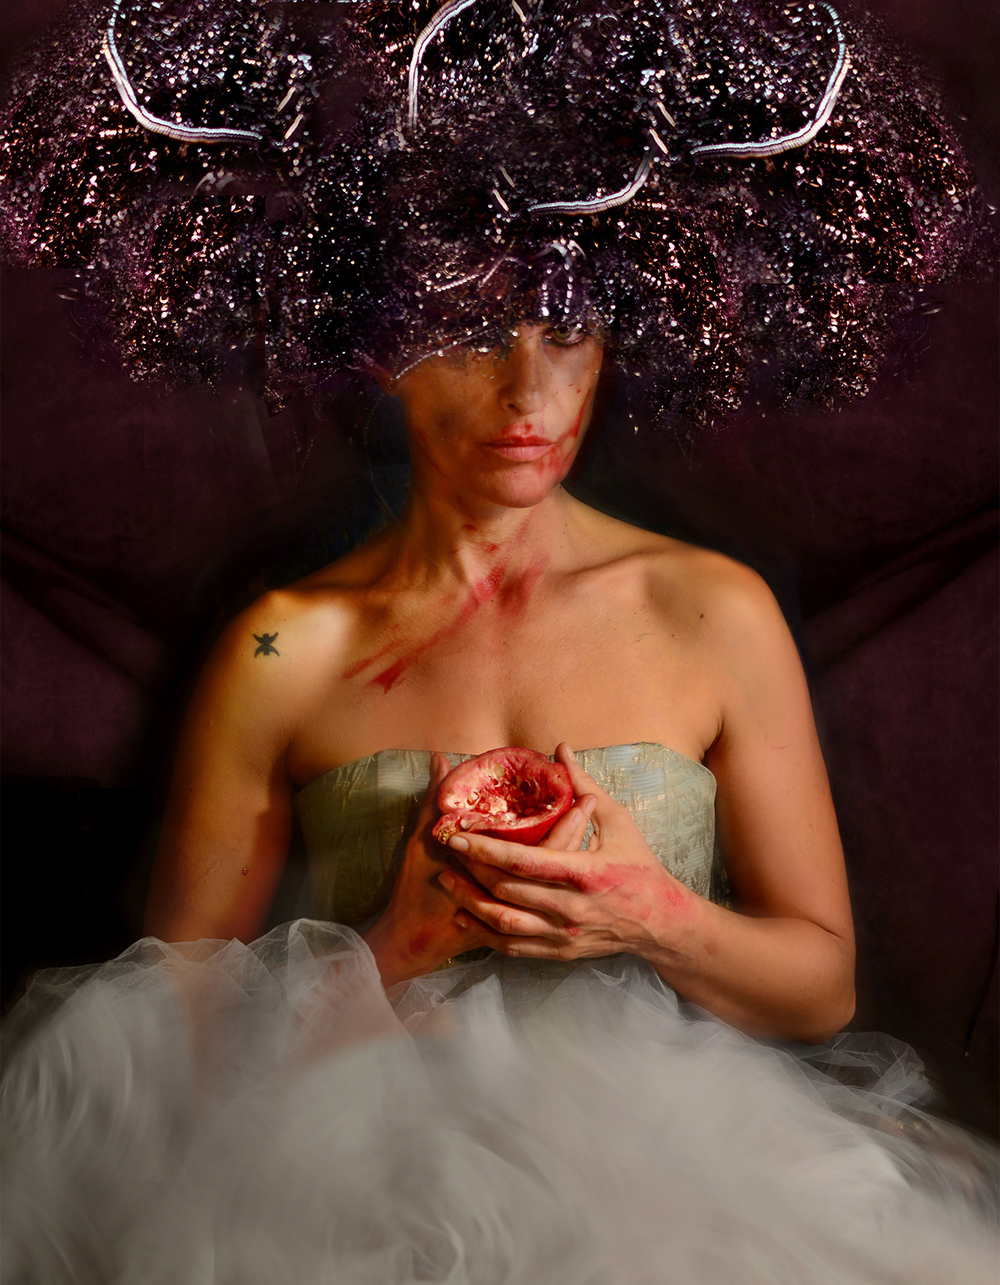 Self Portrait as Persephone in the underworld